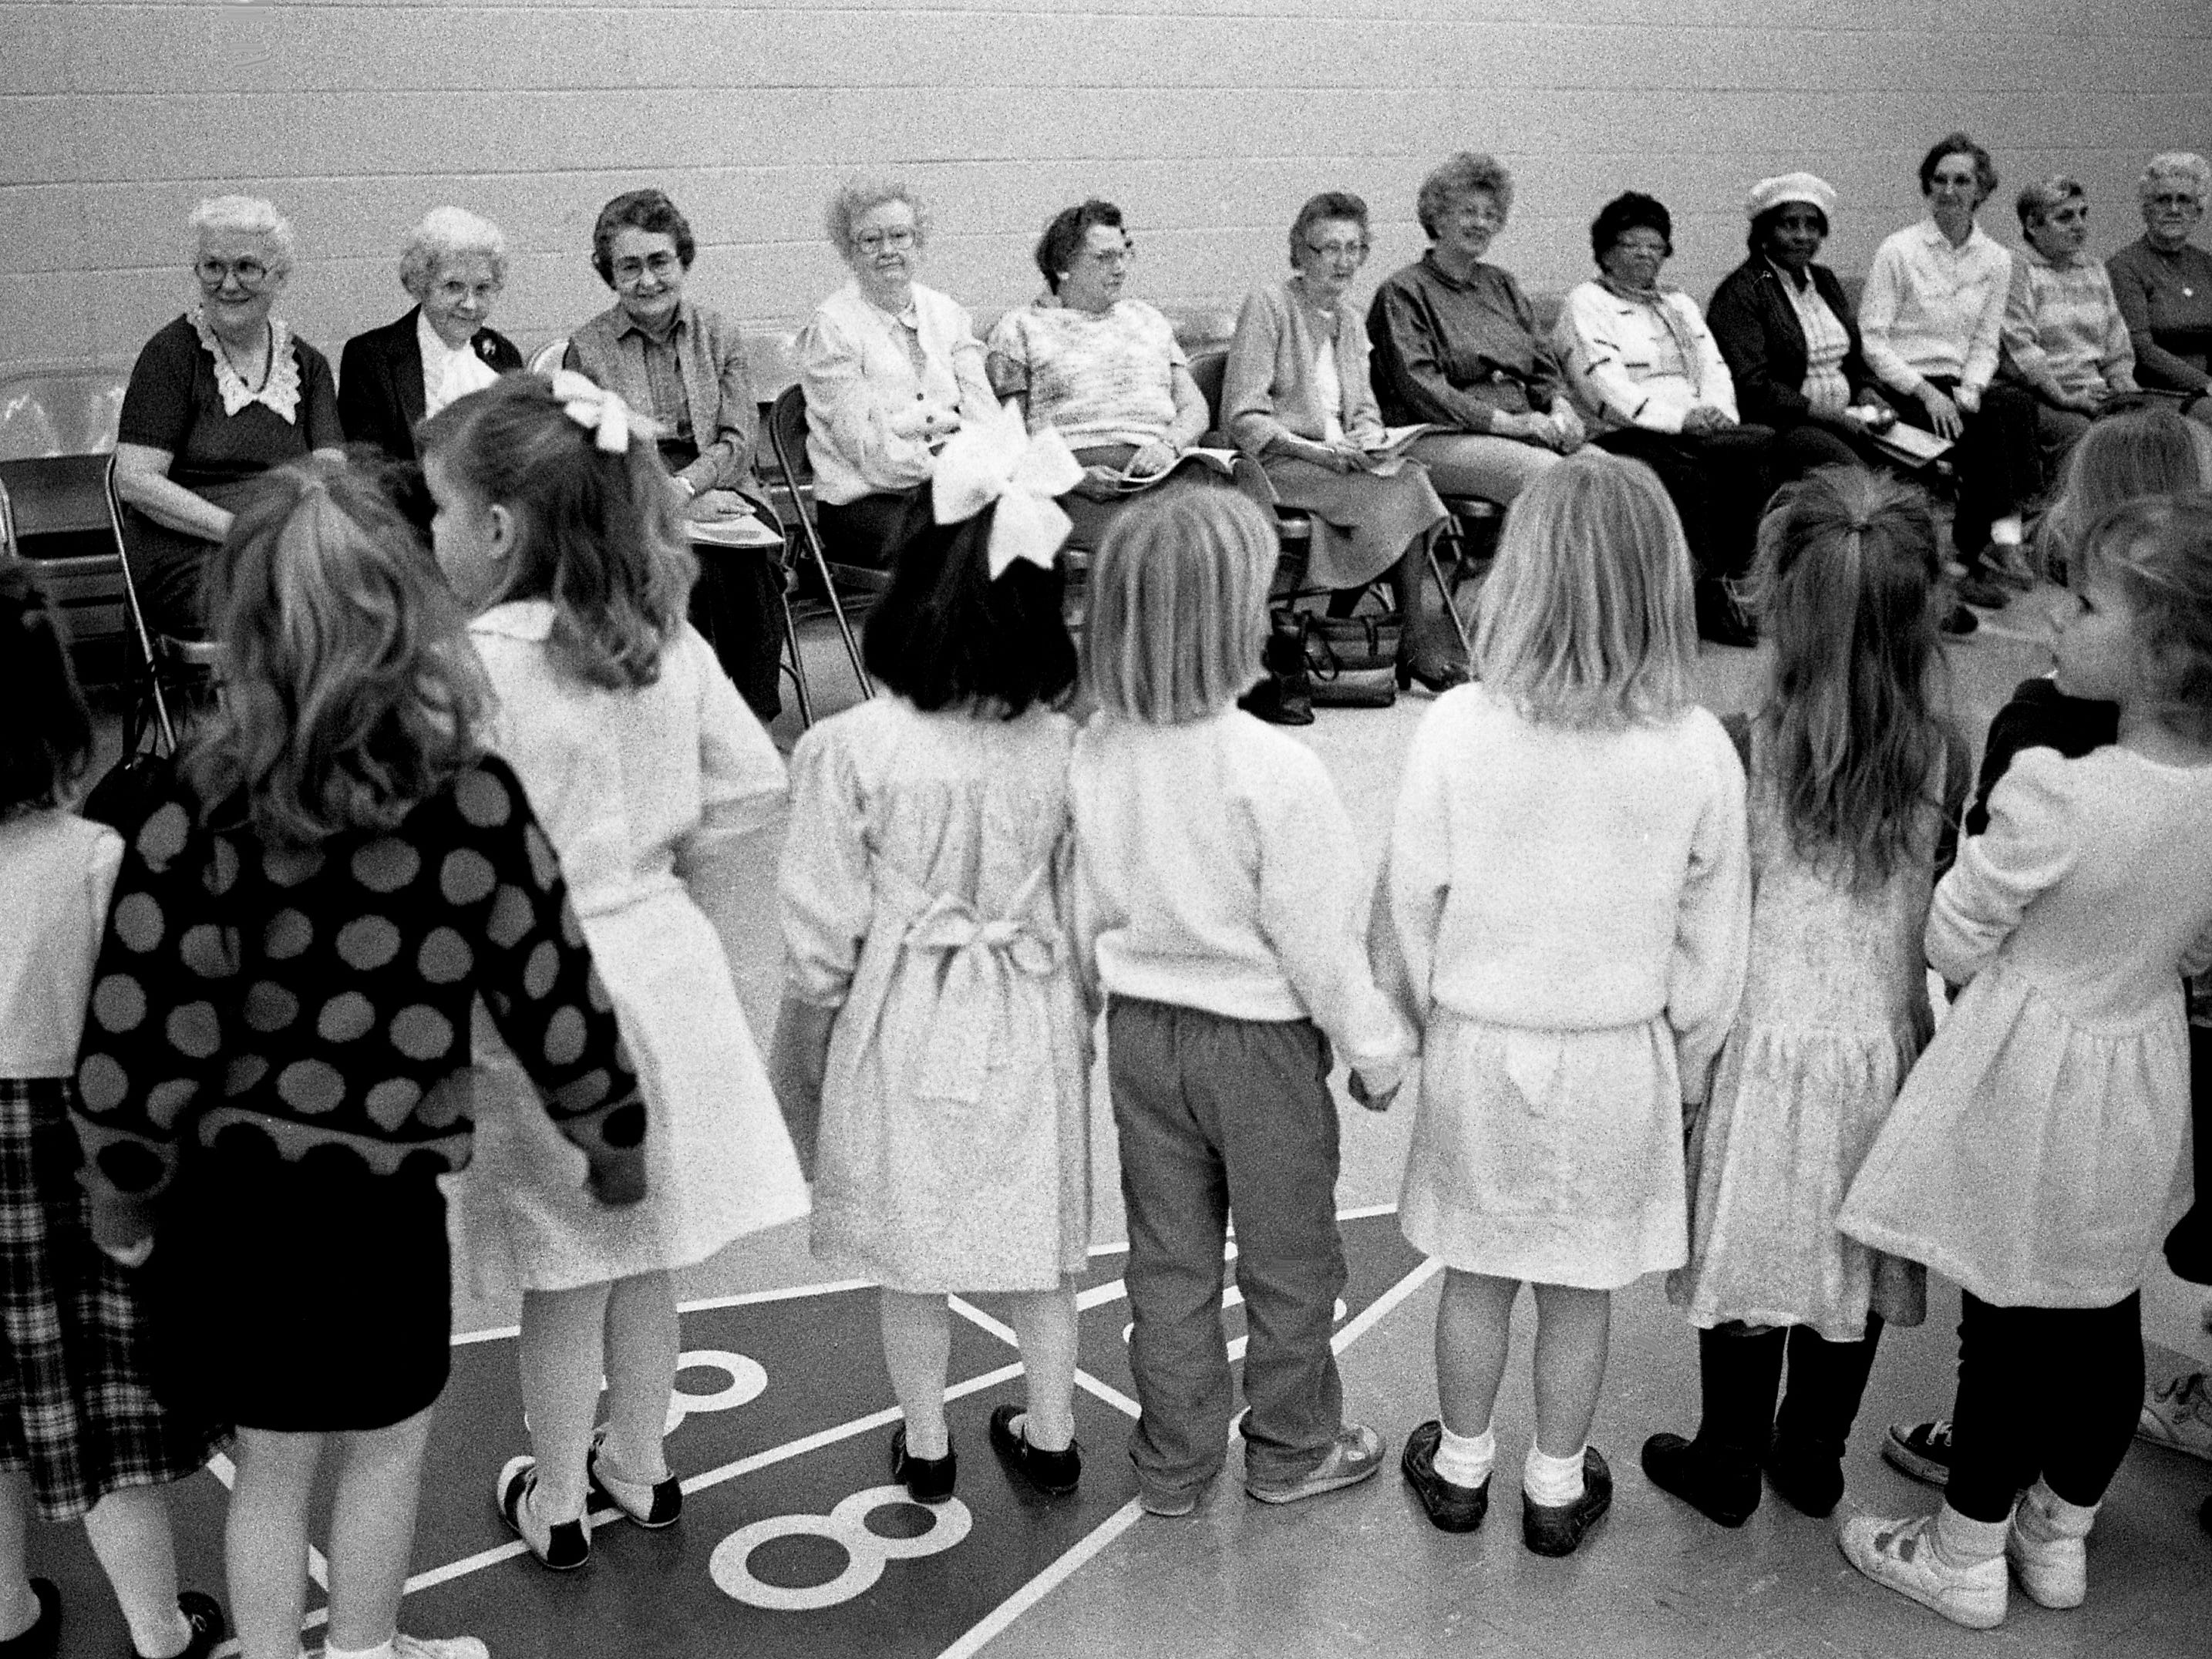 Students from The Ensworth School line up along with a group of senior citizens at the J. B. Knowles Center on Feb. 13, 1989, for a Valentine's party.